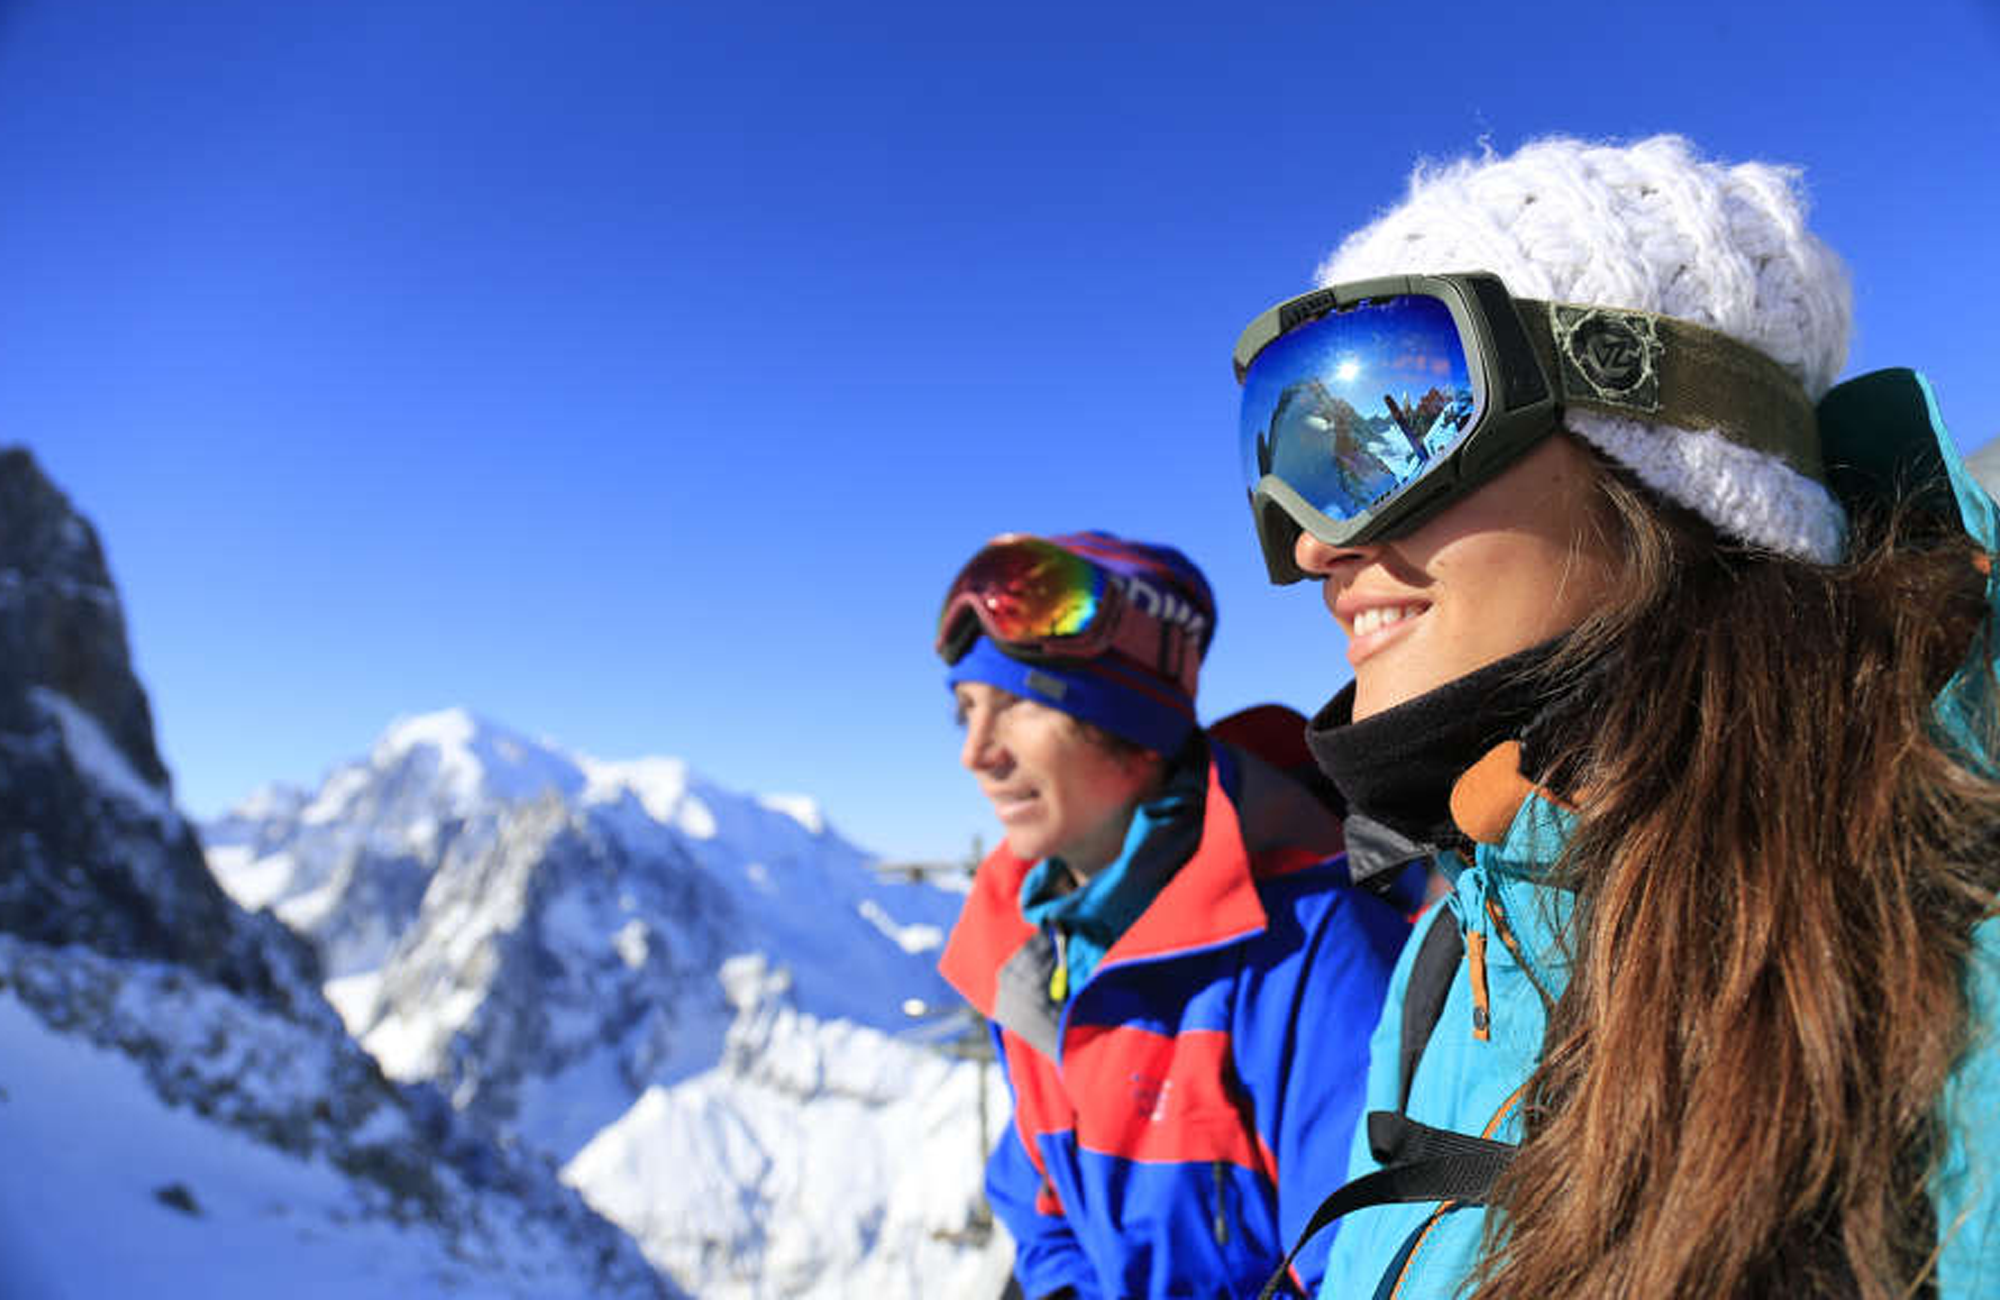 Cold Fusion Chalets - Singles Ski & Snowboarding Holidays